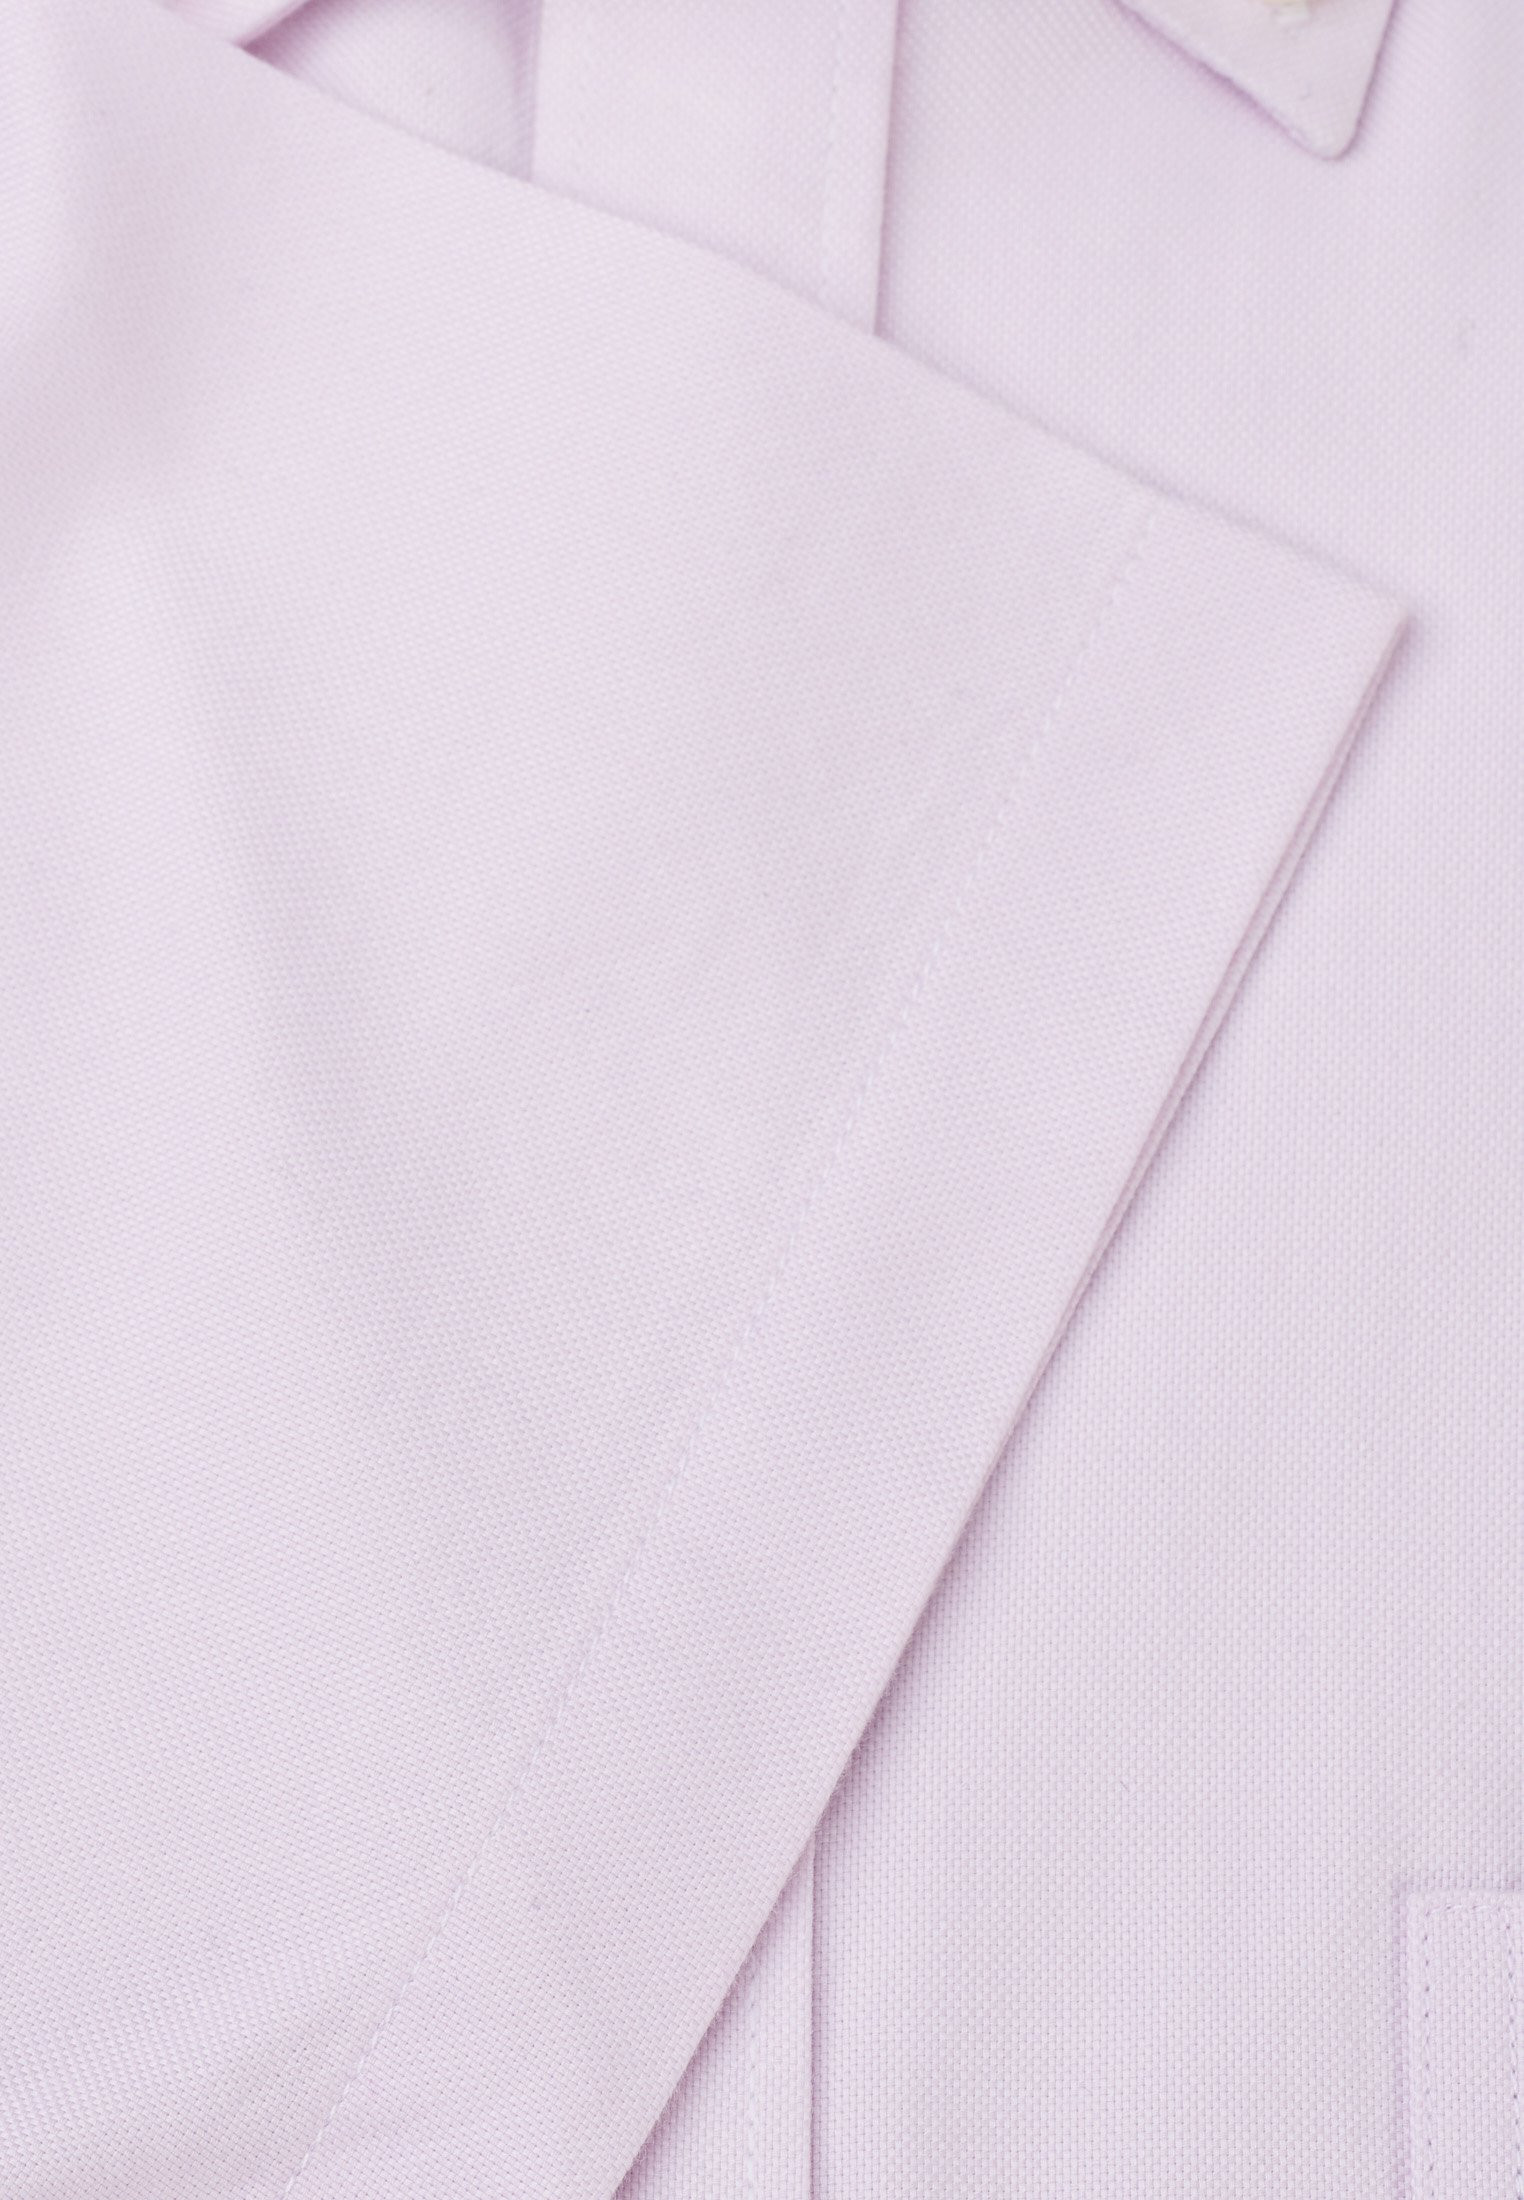 Long and Short Sleeve Classic and Tailored Fit Pink Oxford with Coloured Trim Shirt